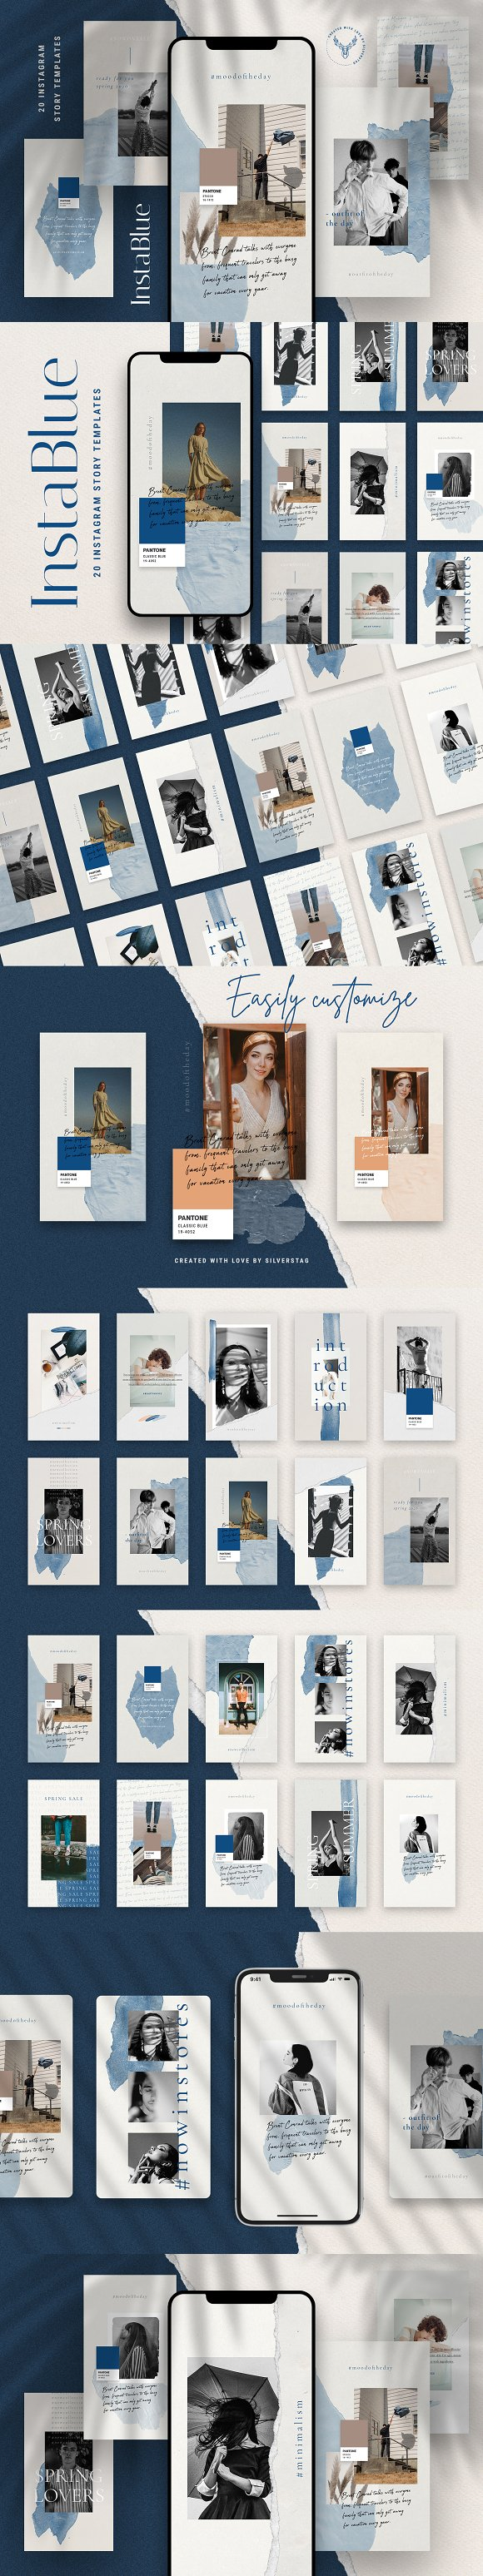 Ultimate Instagram Bundle + Updates in Instagram Templates - product preview 20